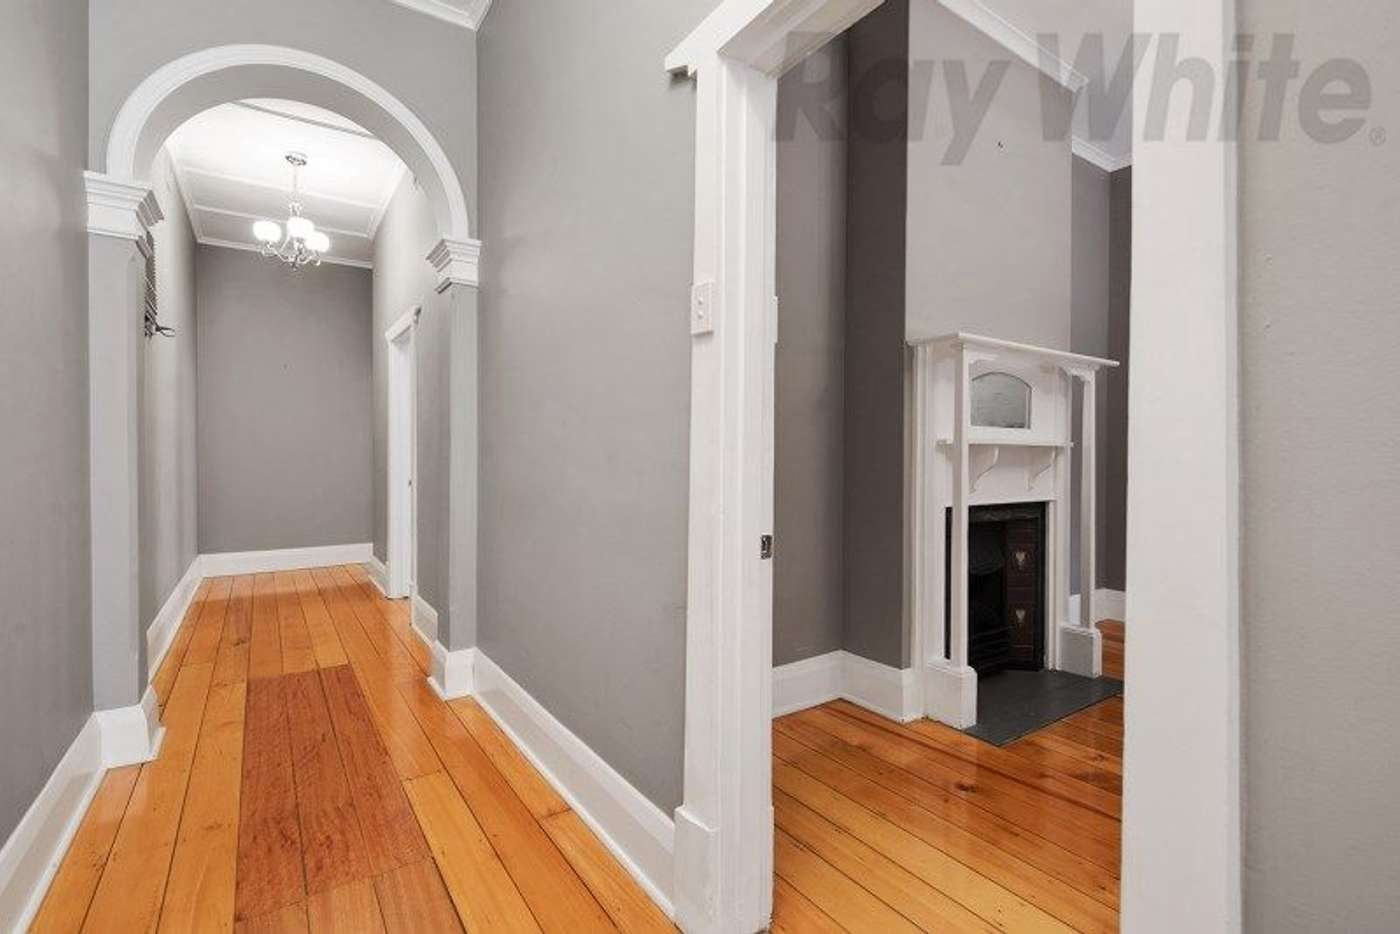 Main view of Homely house listing, 181 South Road, Mile End SA 5031